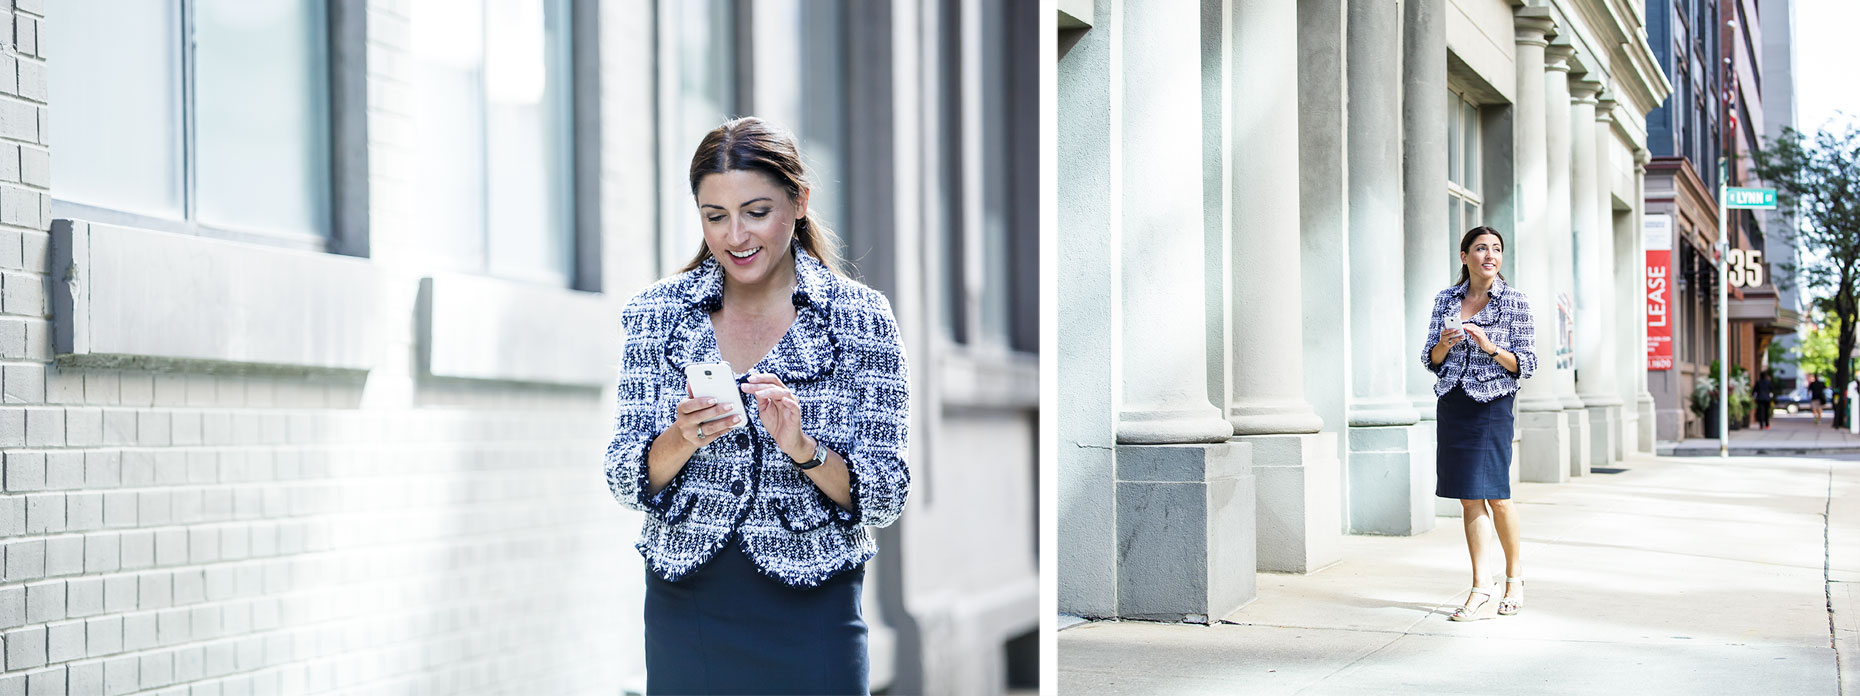 Lifestyle portrait of professional woman using cell phone in city